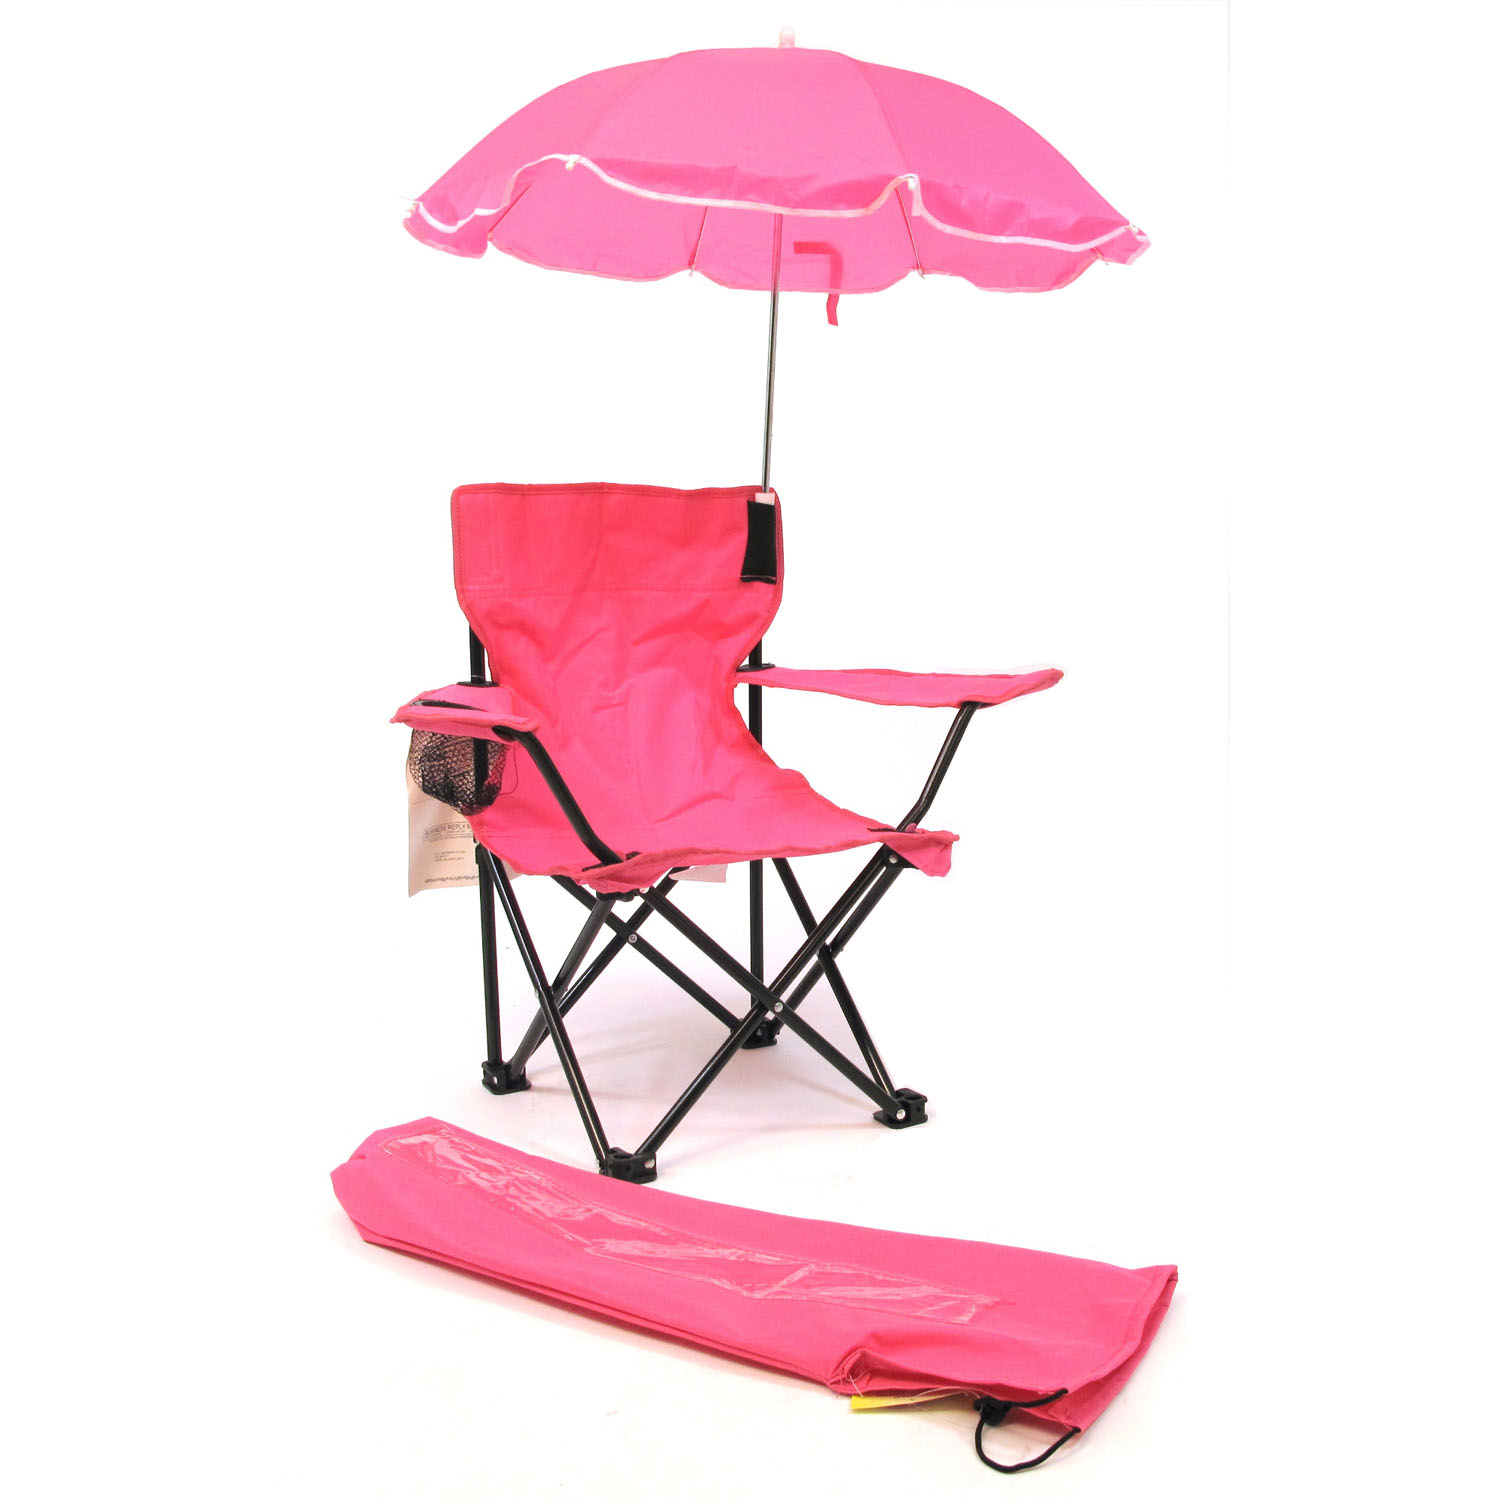 Beach Baby All-Season Umbrella Chair with Matching Shoulder Bag - Hot Pink